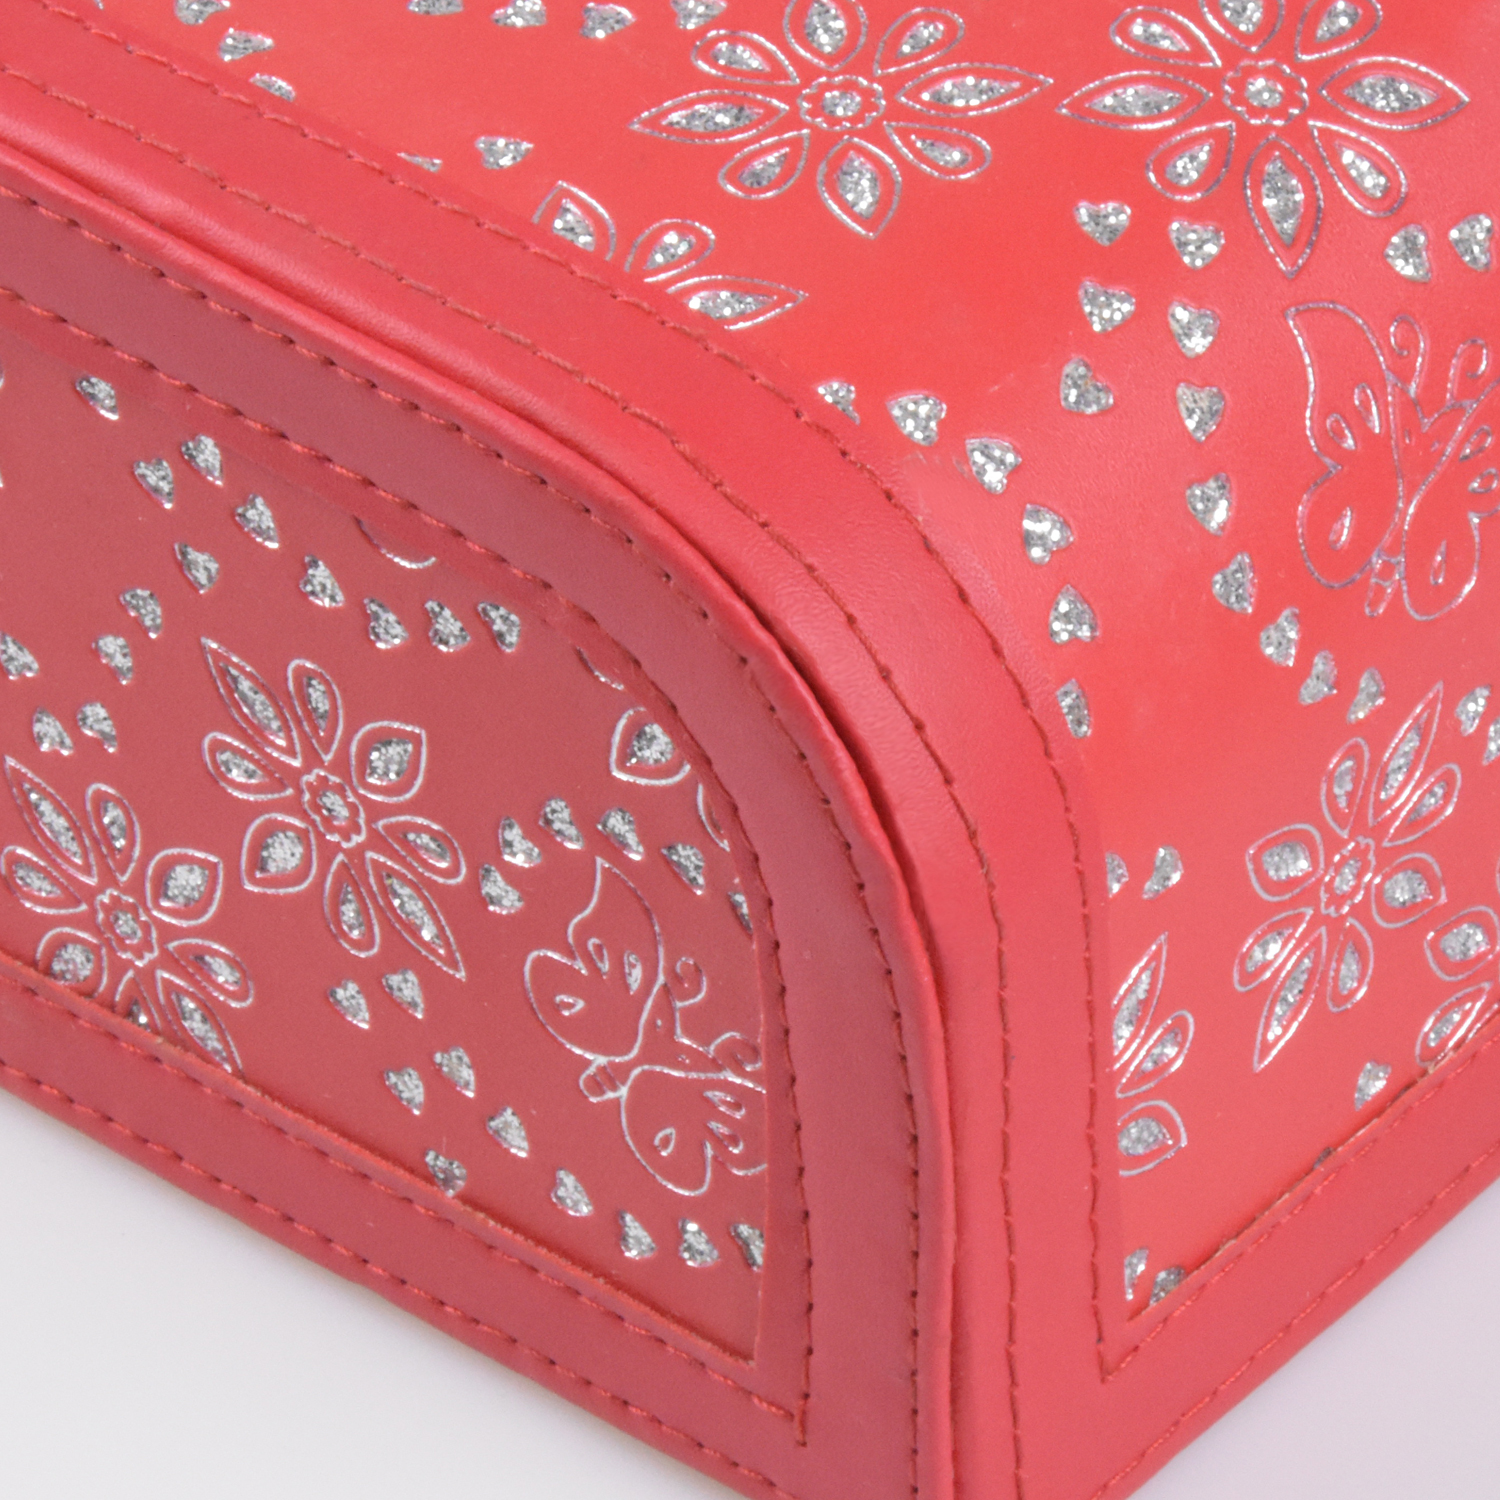 Factory Custom Chinese Luxury Home Office Desktop PU  Leather Tissue Box